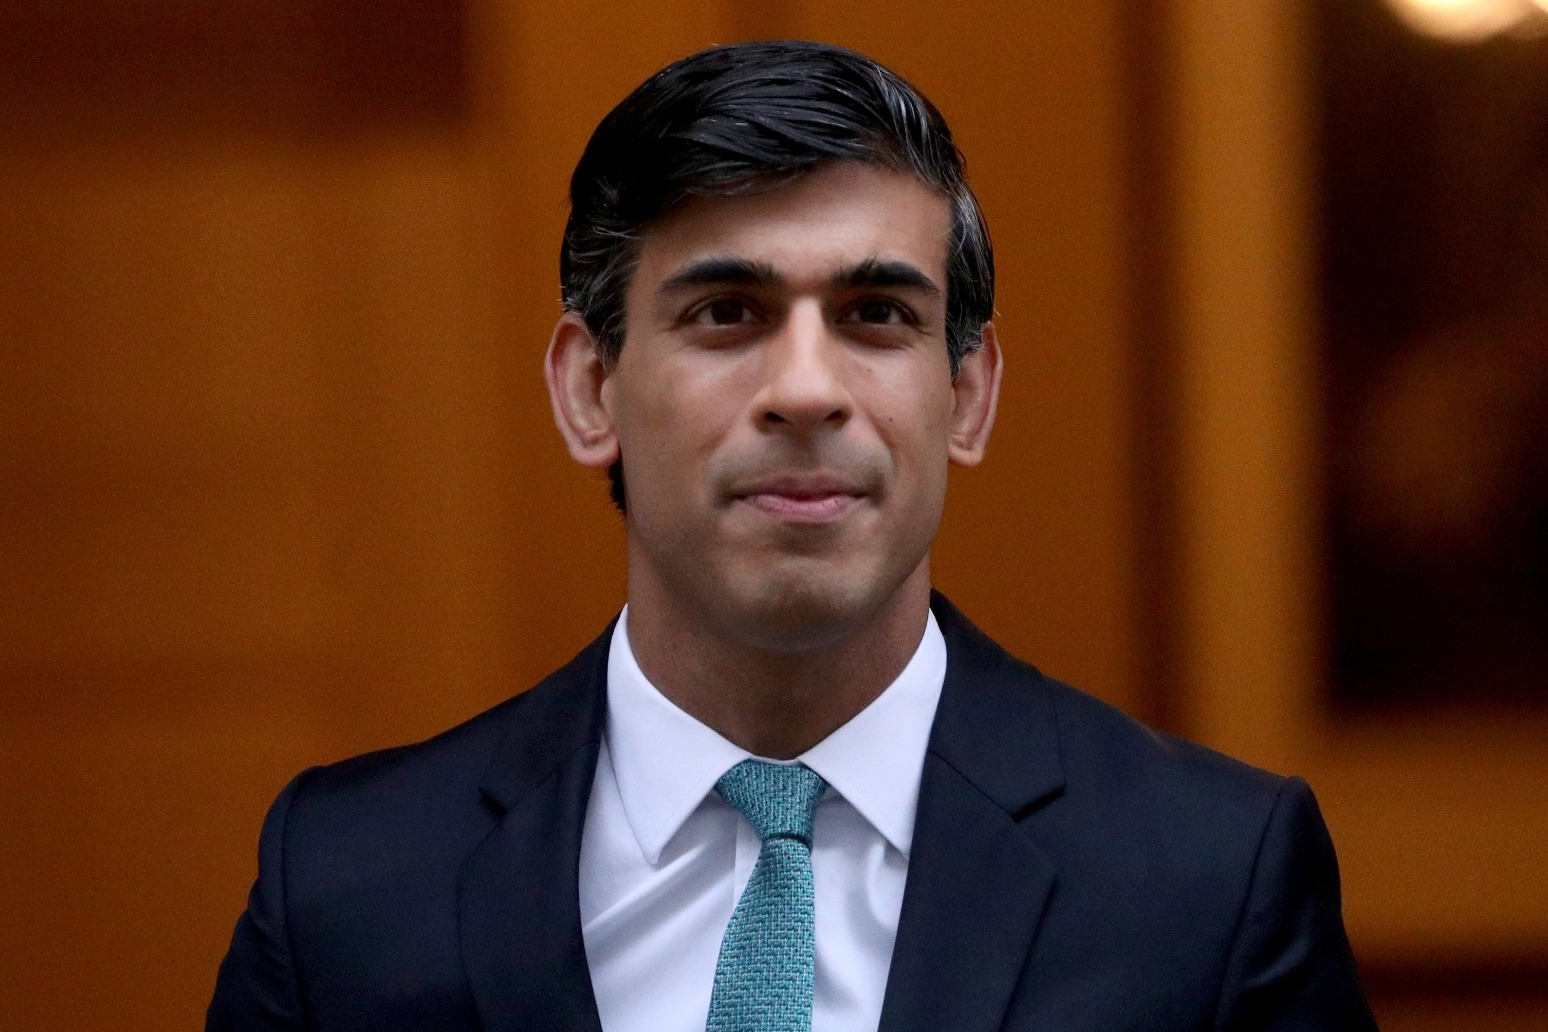 Rishi Sunak: Nation's economy to face 'enormous strains' following lockdown